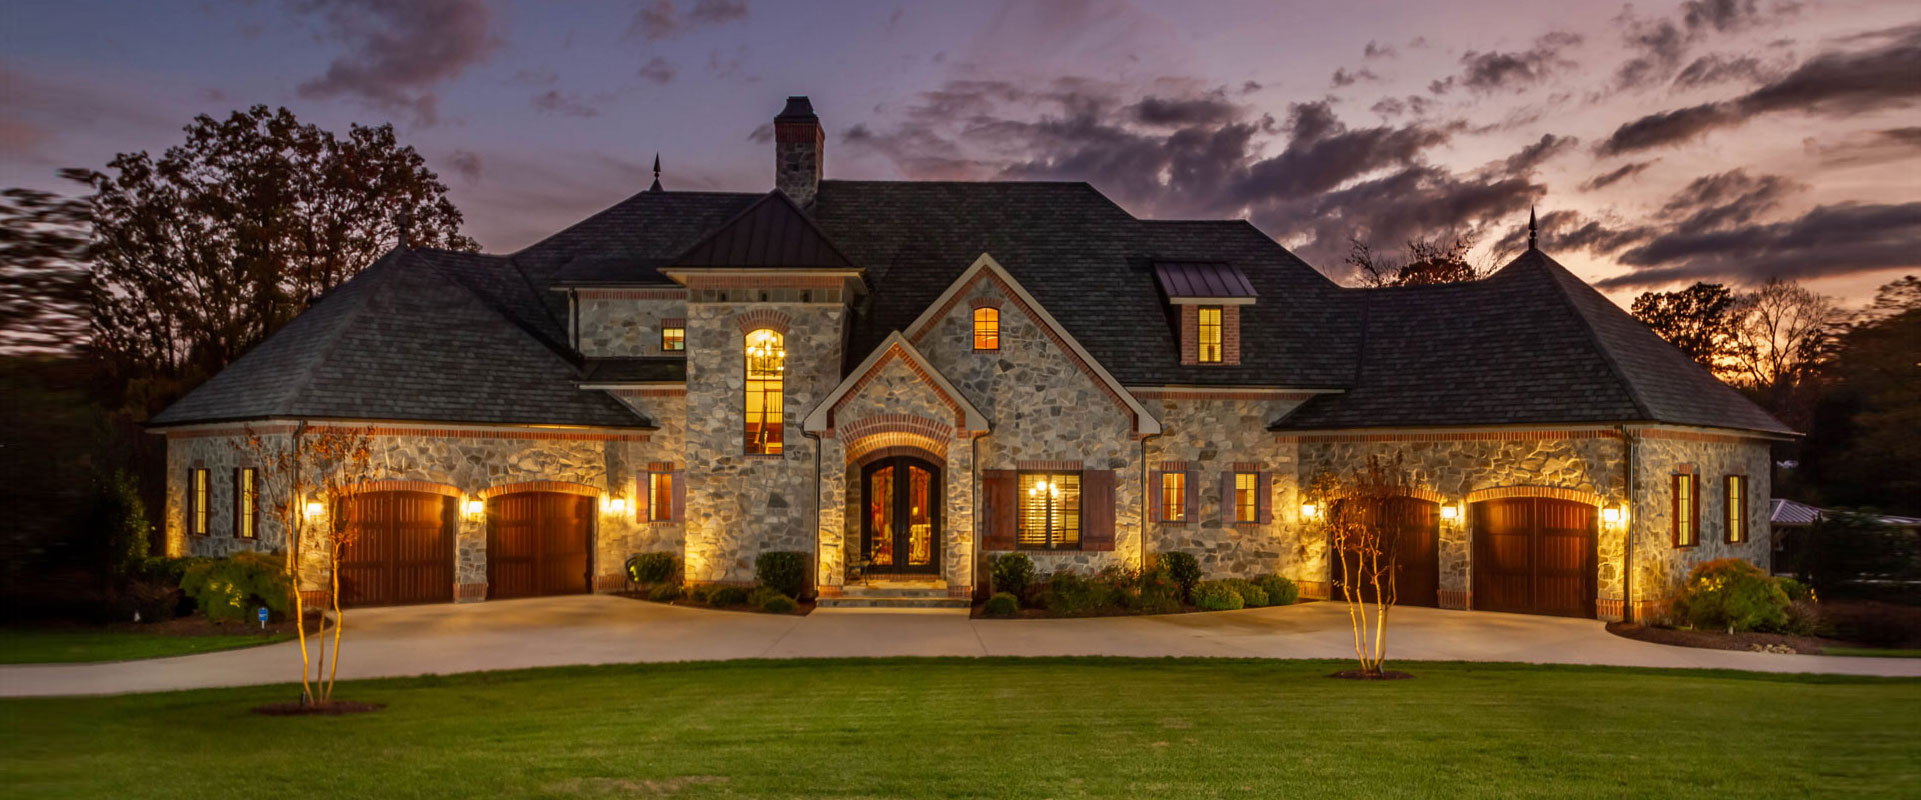 Charlotte-Luxury-Real-Estate-251-Gainswood-Dr-Mooresville-NC-1